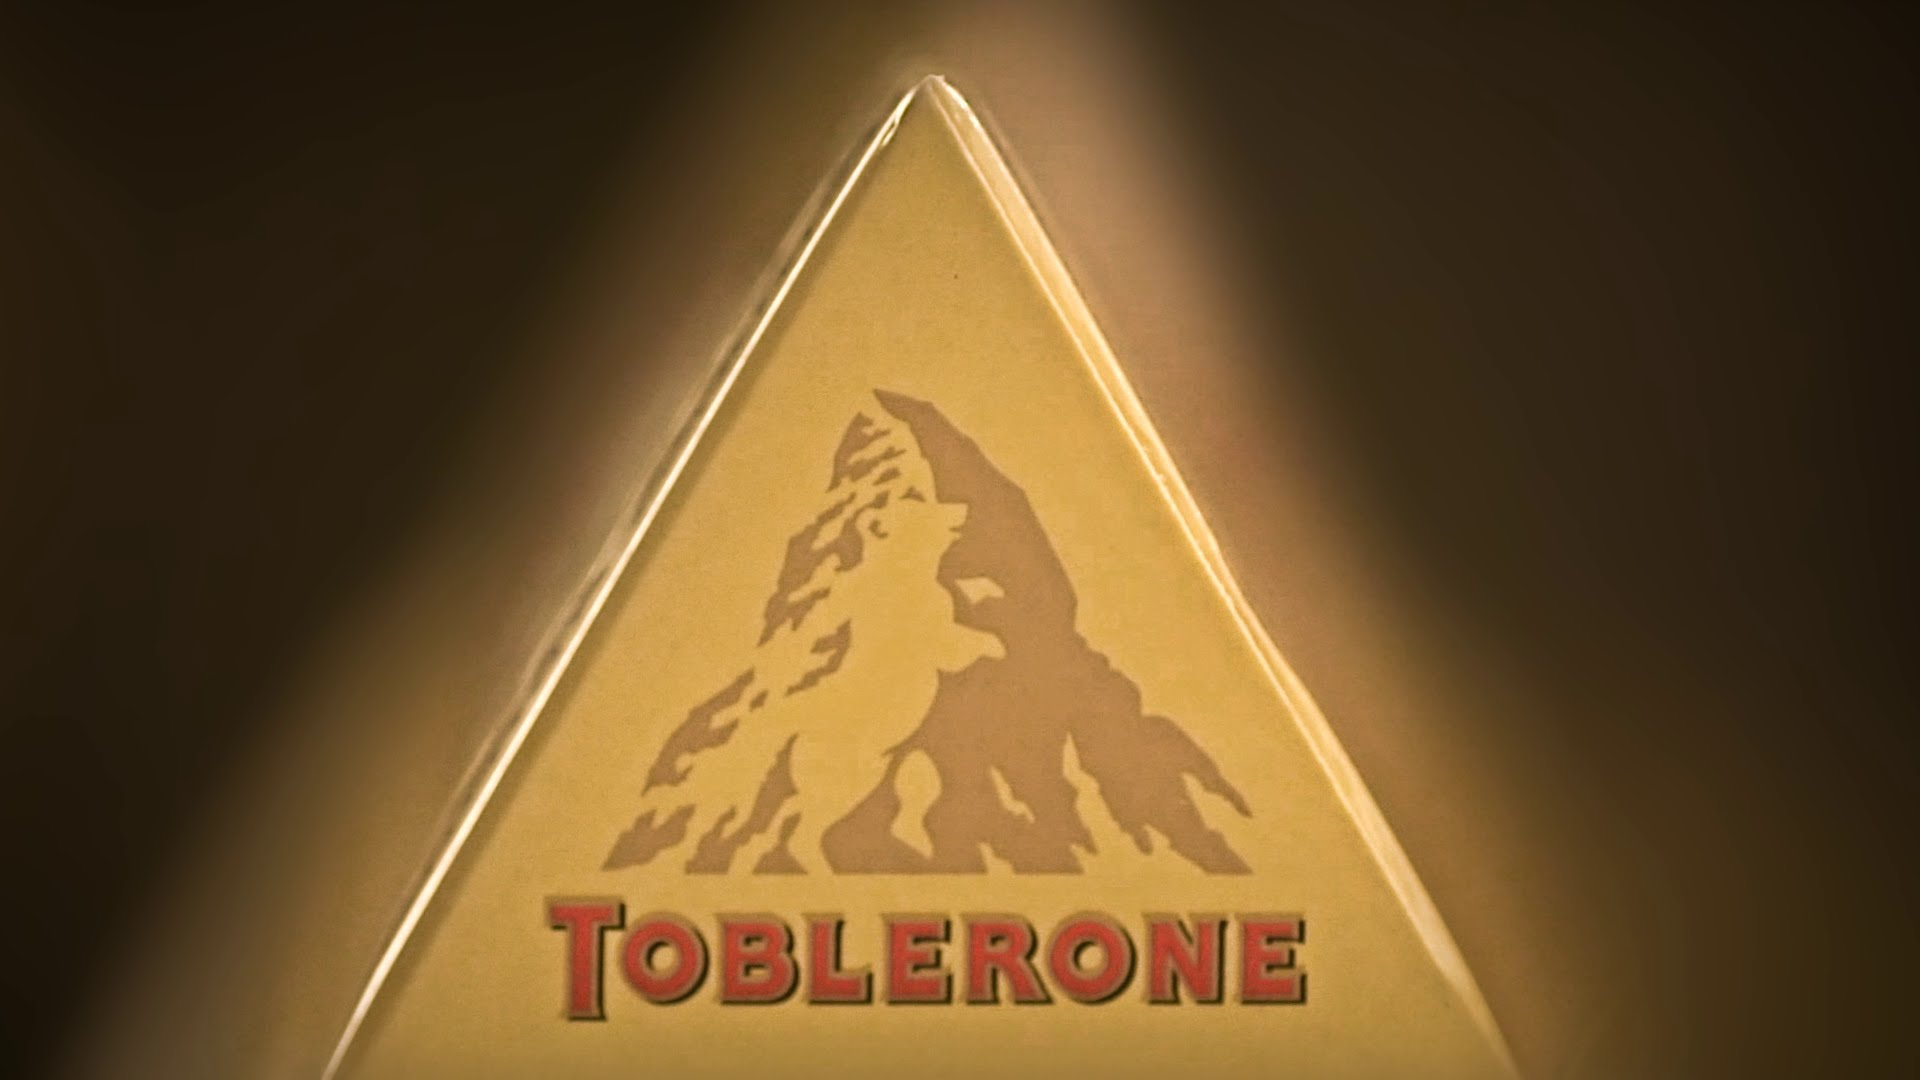 All Cars Logo Hd Wallpapers Toblerone Hd Wallpapers